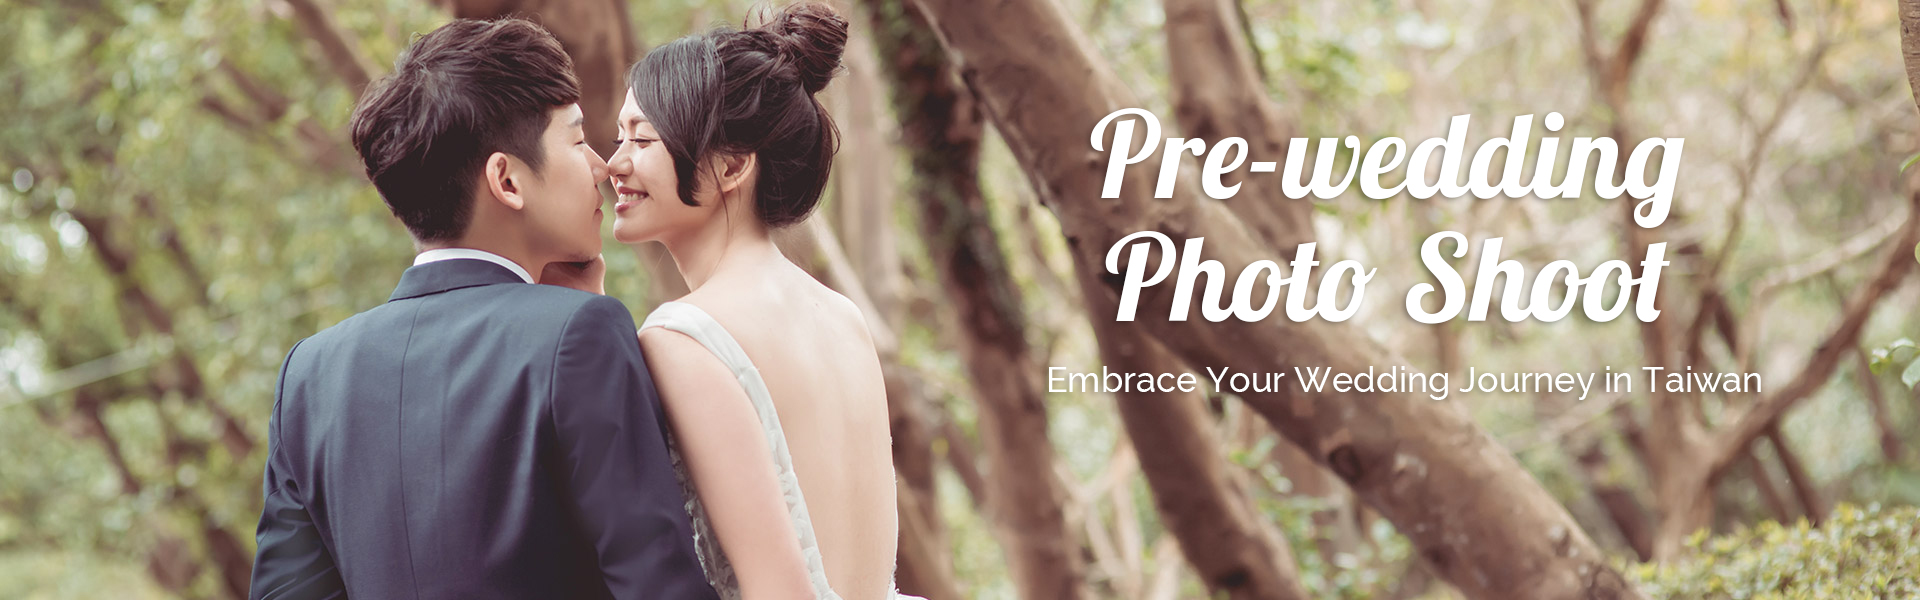 Pre-wedding photography in Taiwan